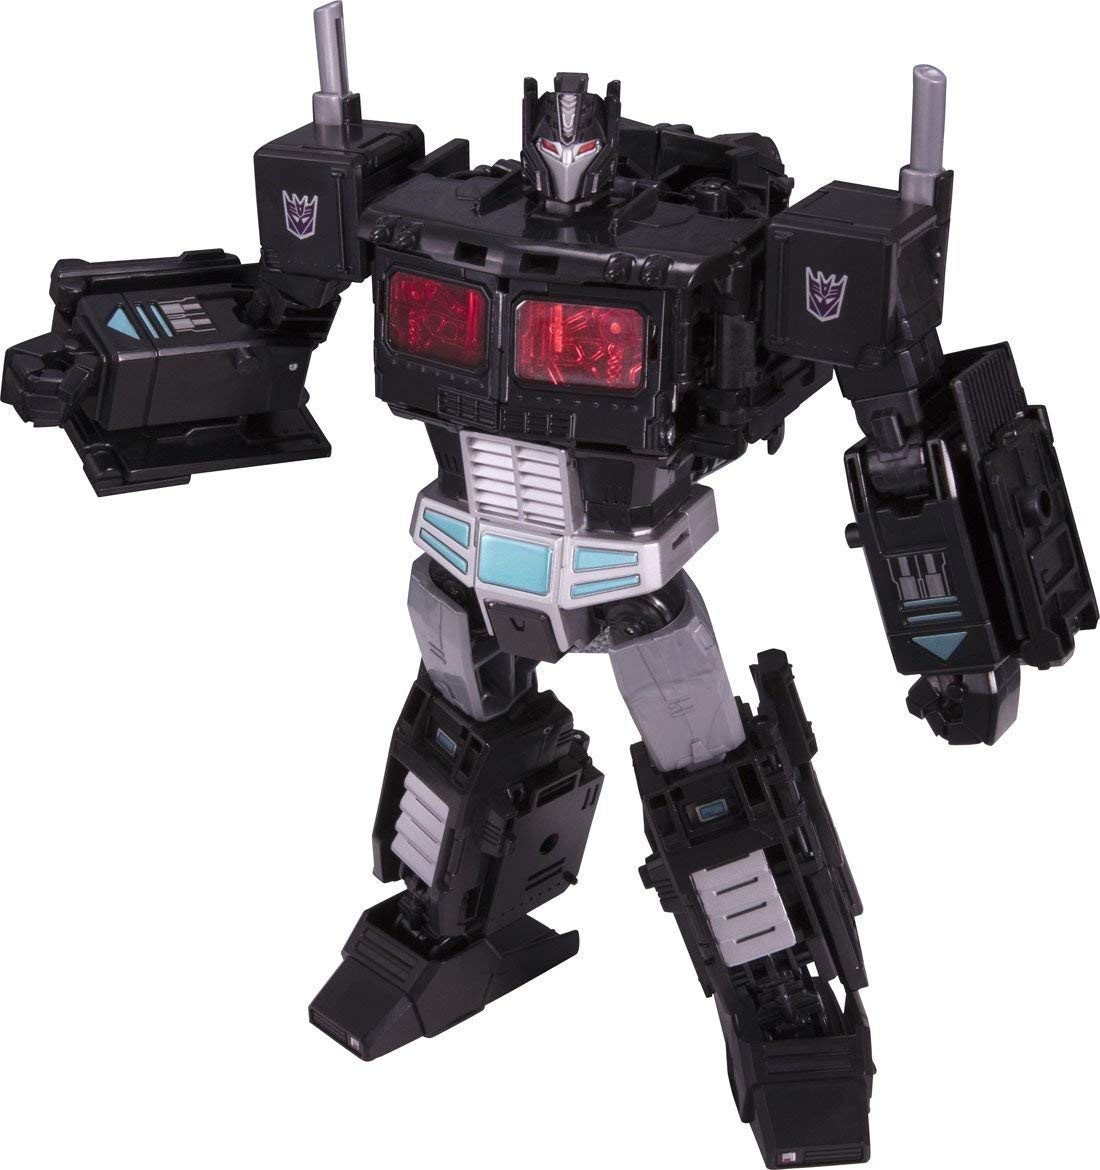 Transformers News: Amazon Japan Listings for Takara Power of the Primes Wreck Gar and Nemesis Prime Featuring New Image